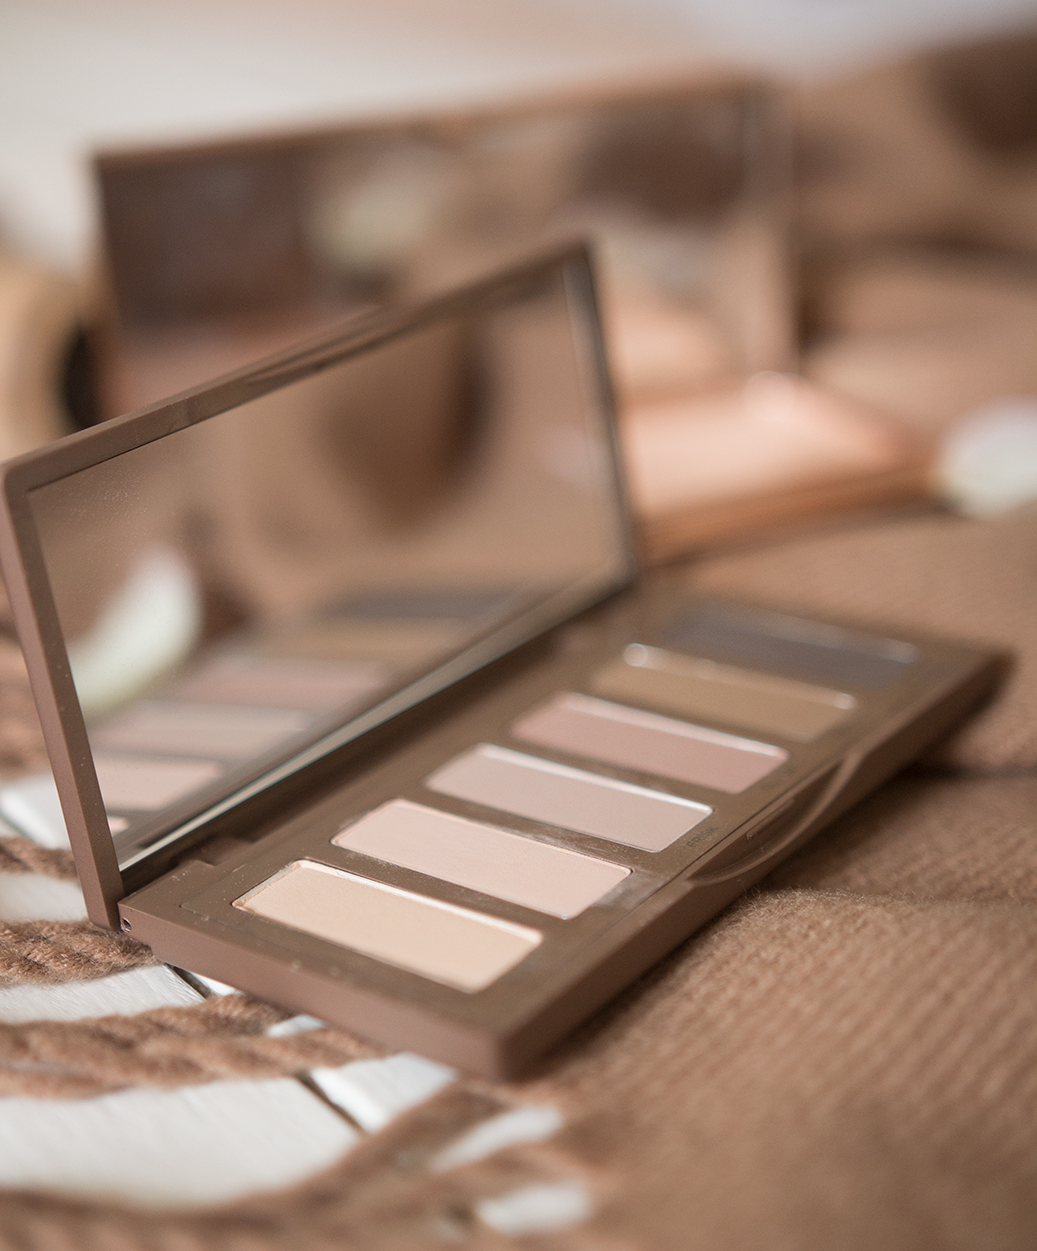 autumn beauty picks urban decay naked 2 basics palette